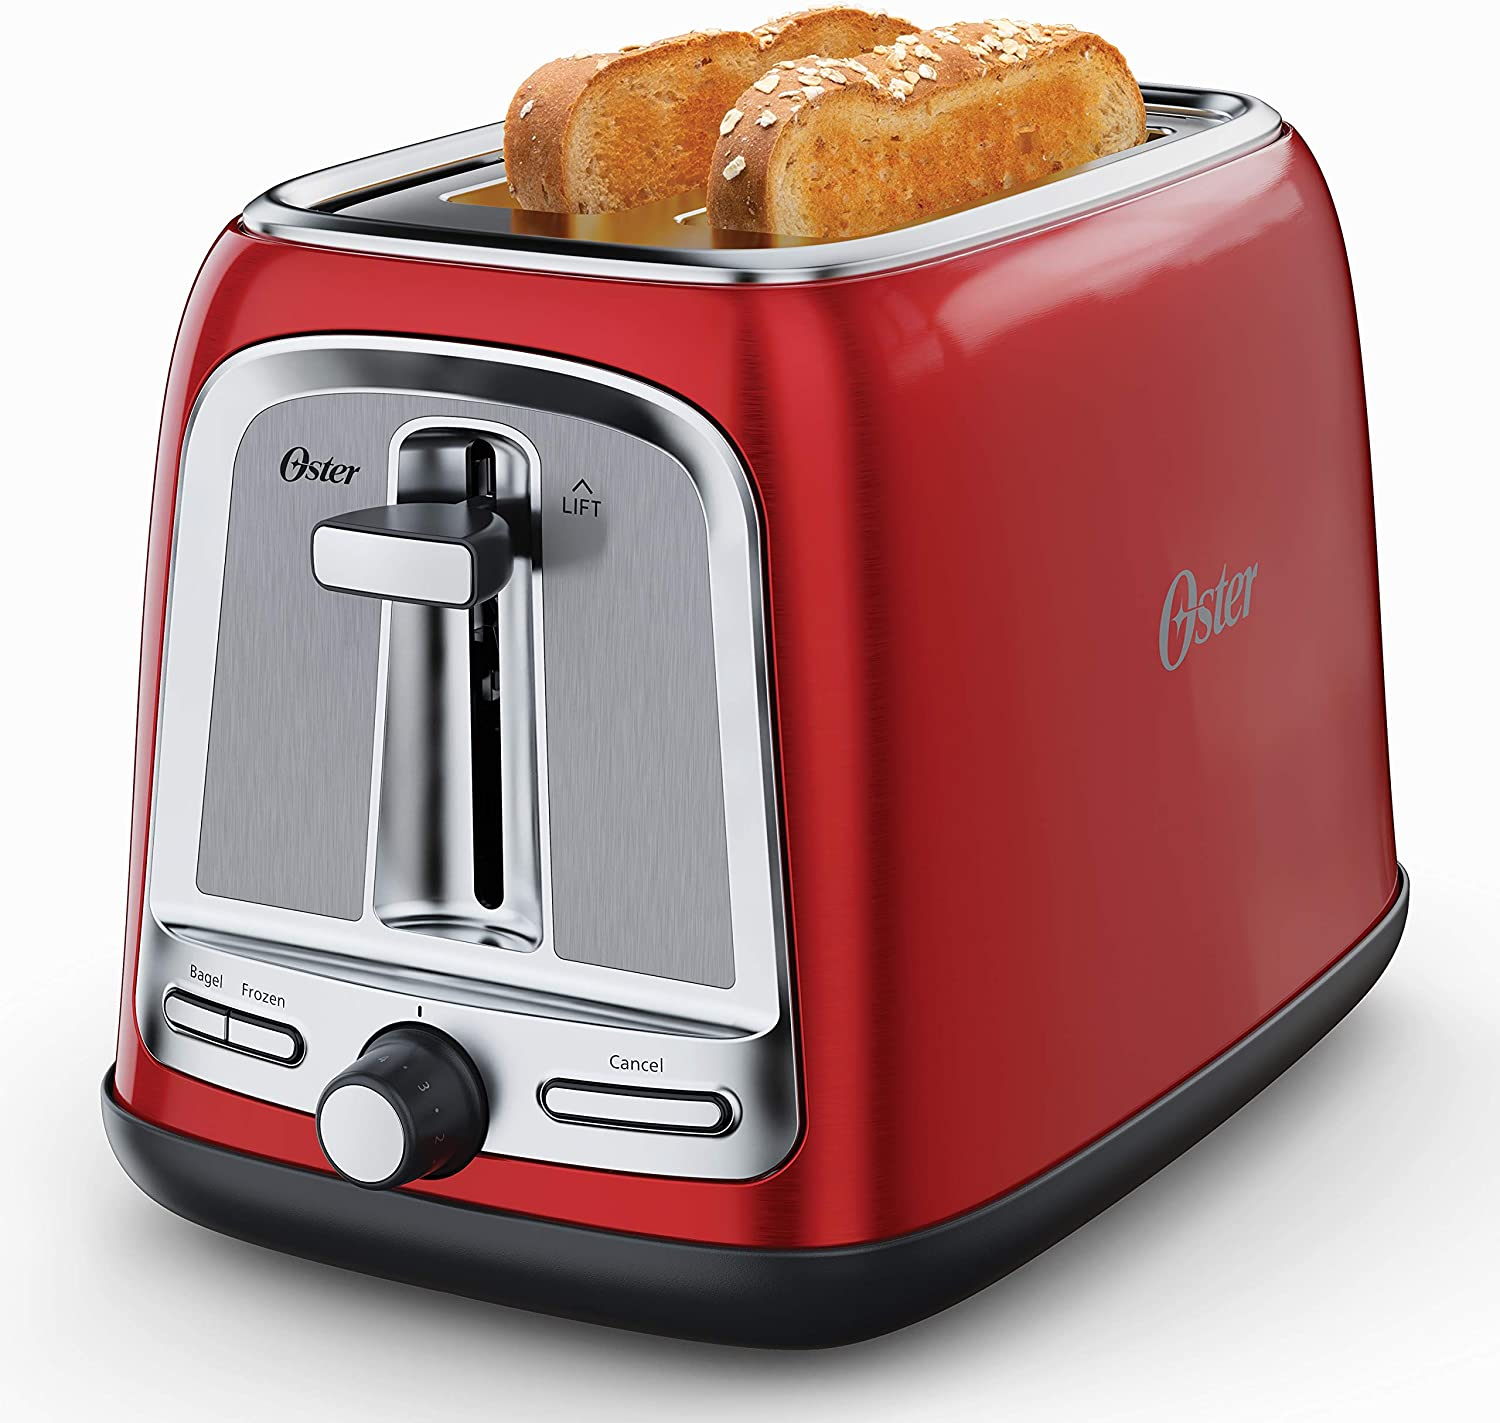 Oster 2-Slice Toaster with Advanced Toast Technology, Candy Apple Red